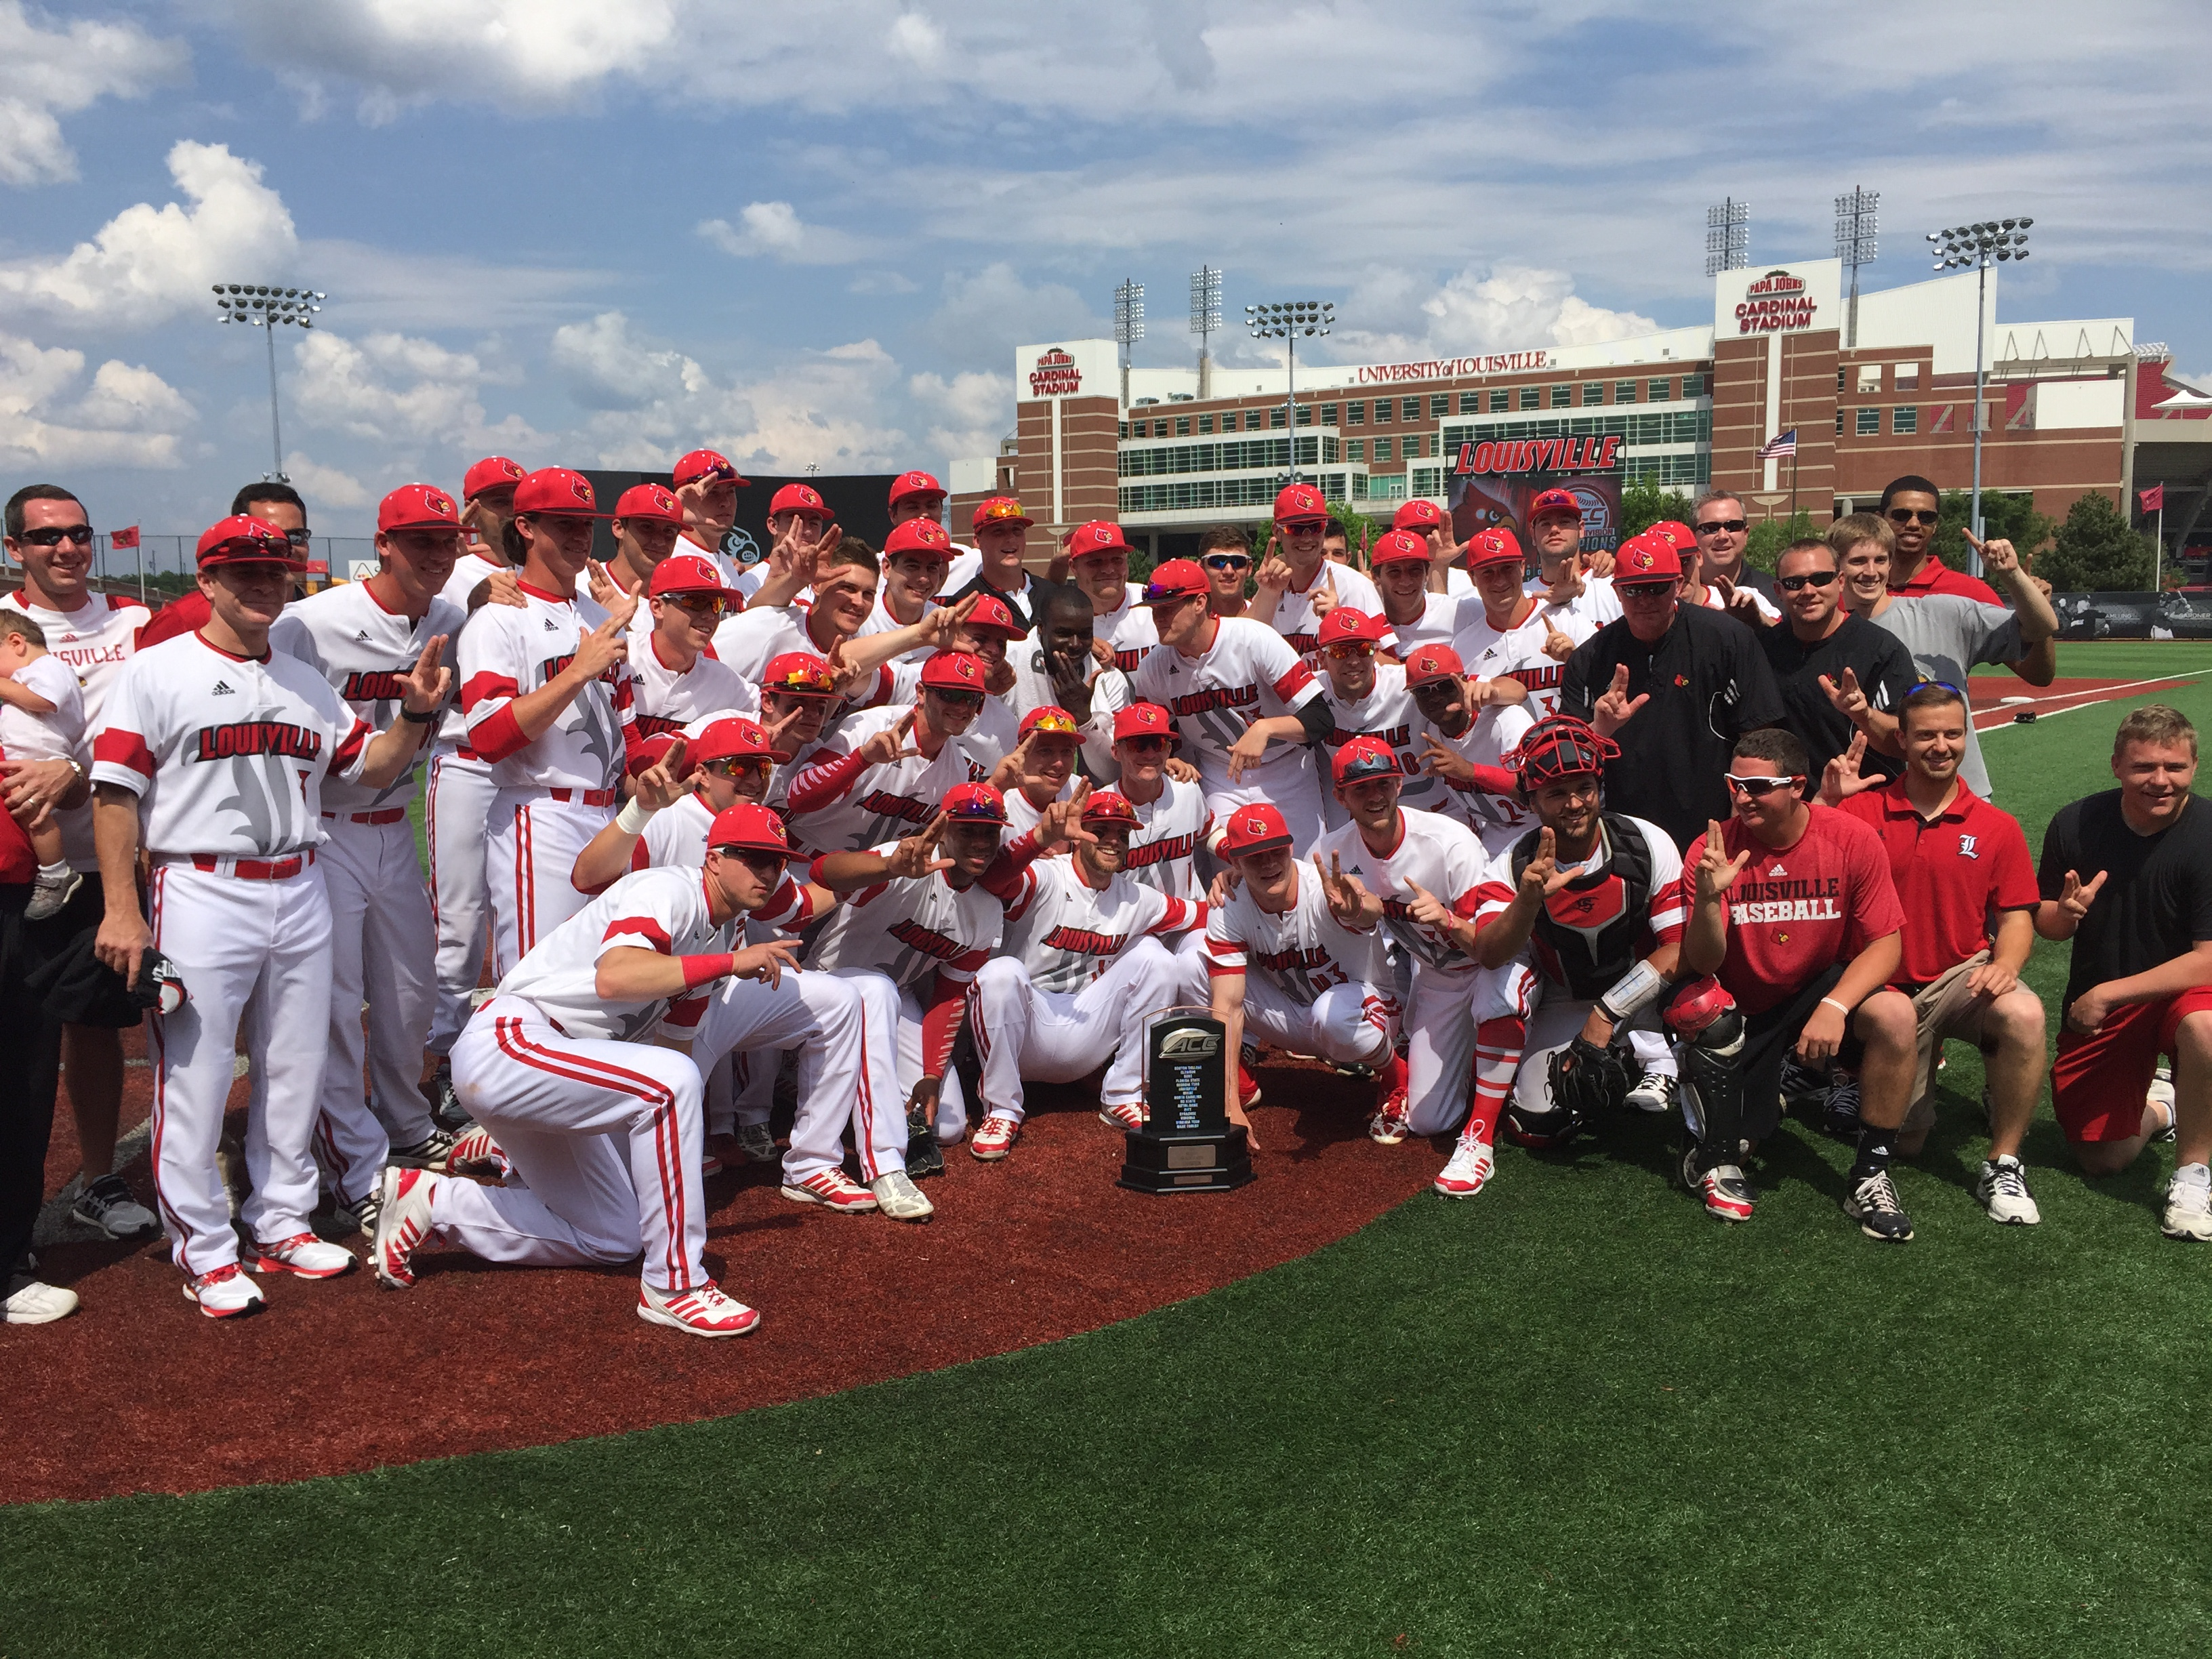 Louisville Celebrates 2015 ACC Atlantic Division Title Louisville vs. Florida State 5-9-2015 Jim Patterson Stadium, Photo by Mark Blankenbaker